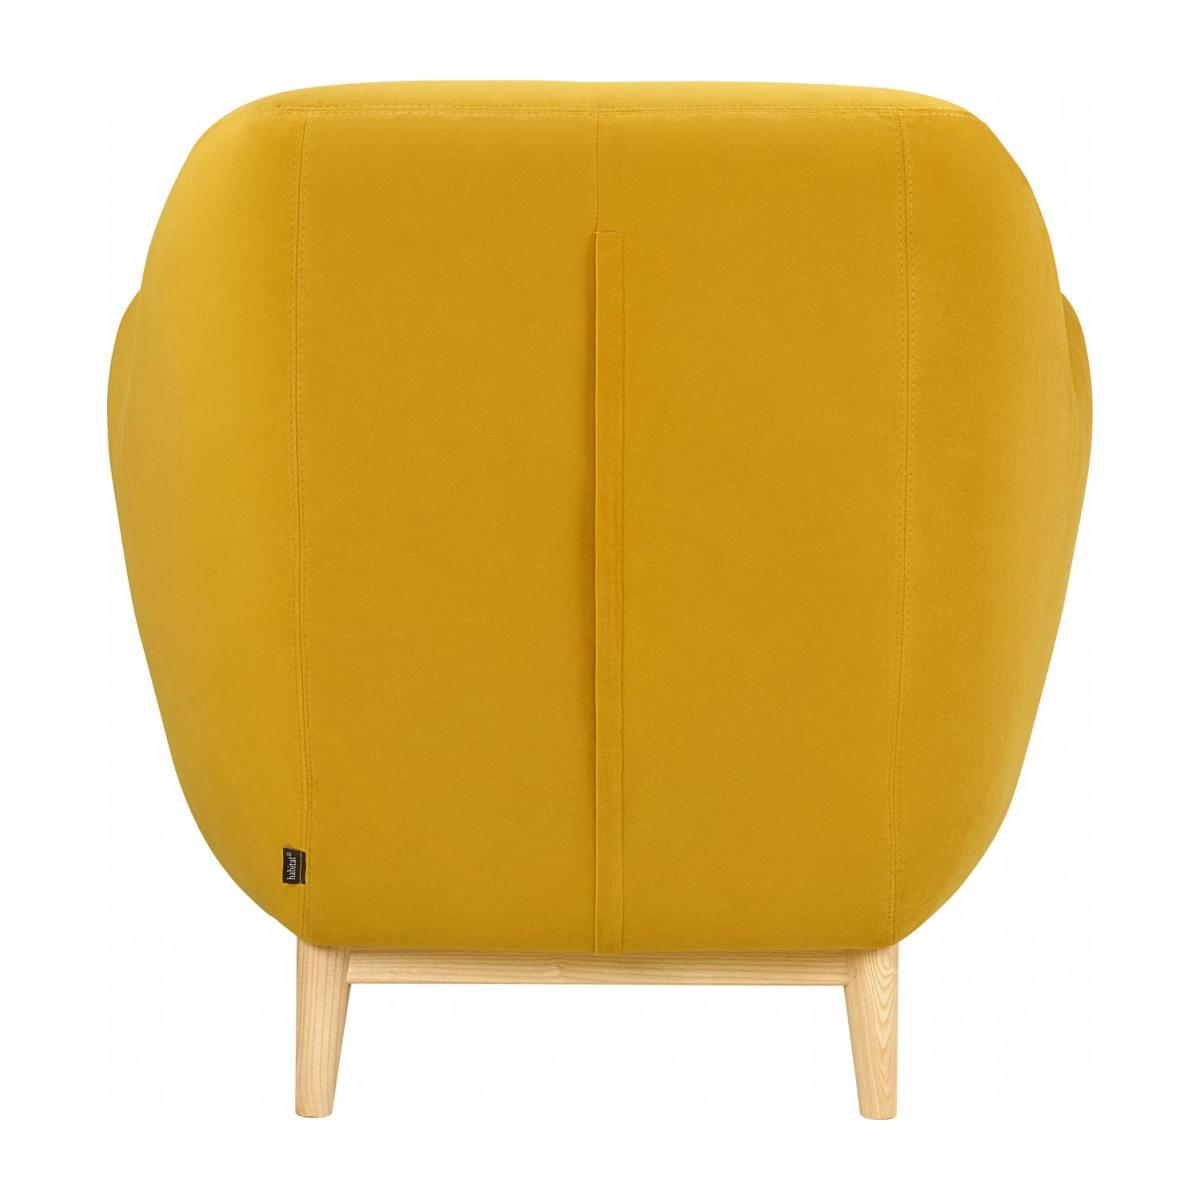 Fauteuil en velours jaune moutarde - Design by Adrien Carvès n°3